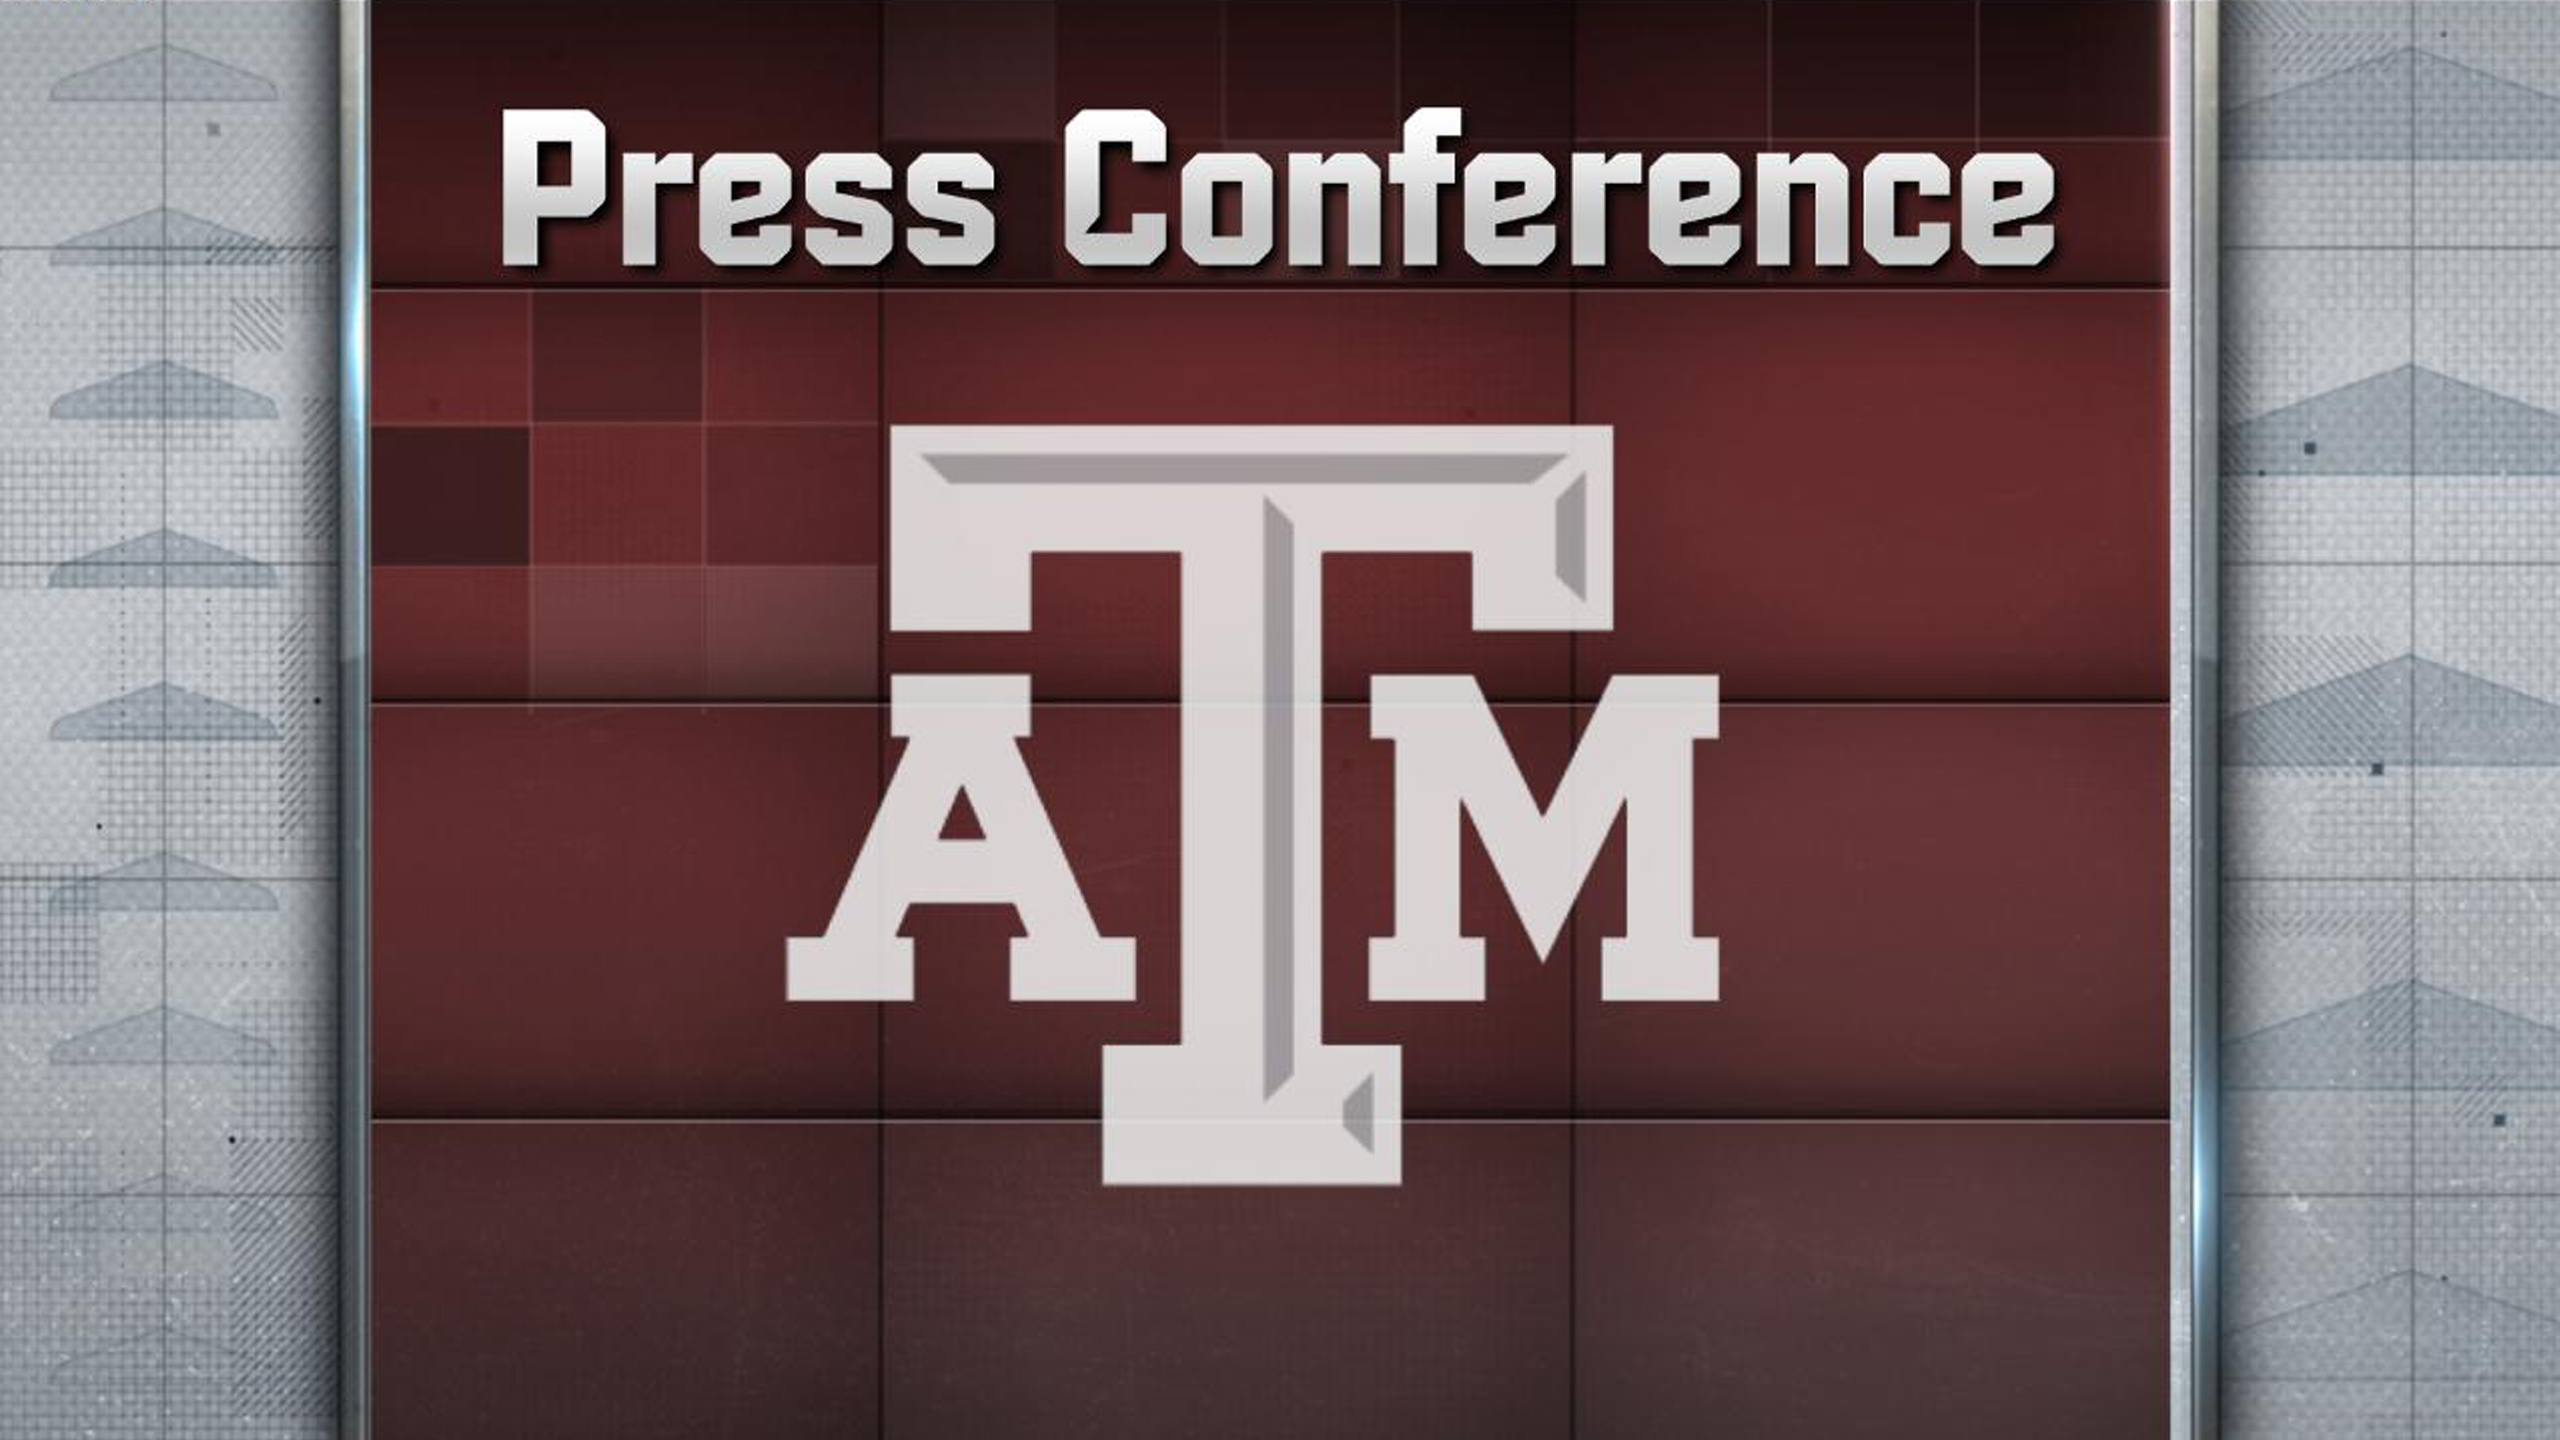 Texas A&M Football Press Conference